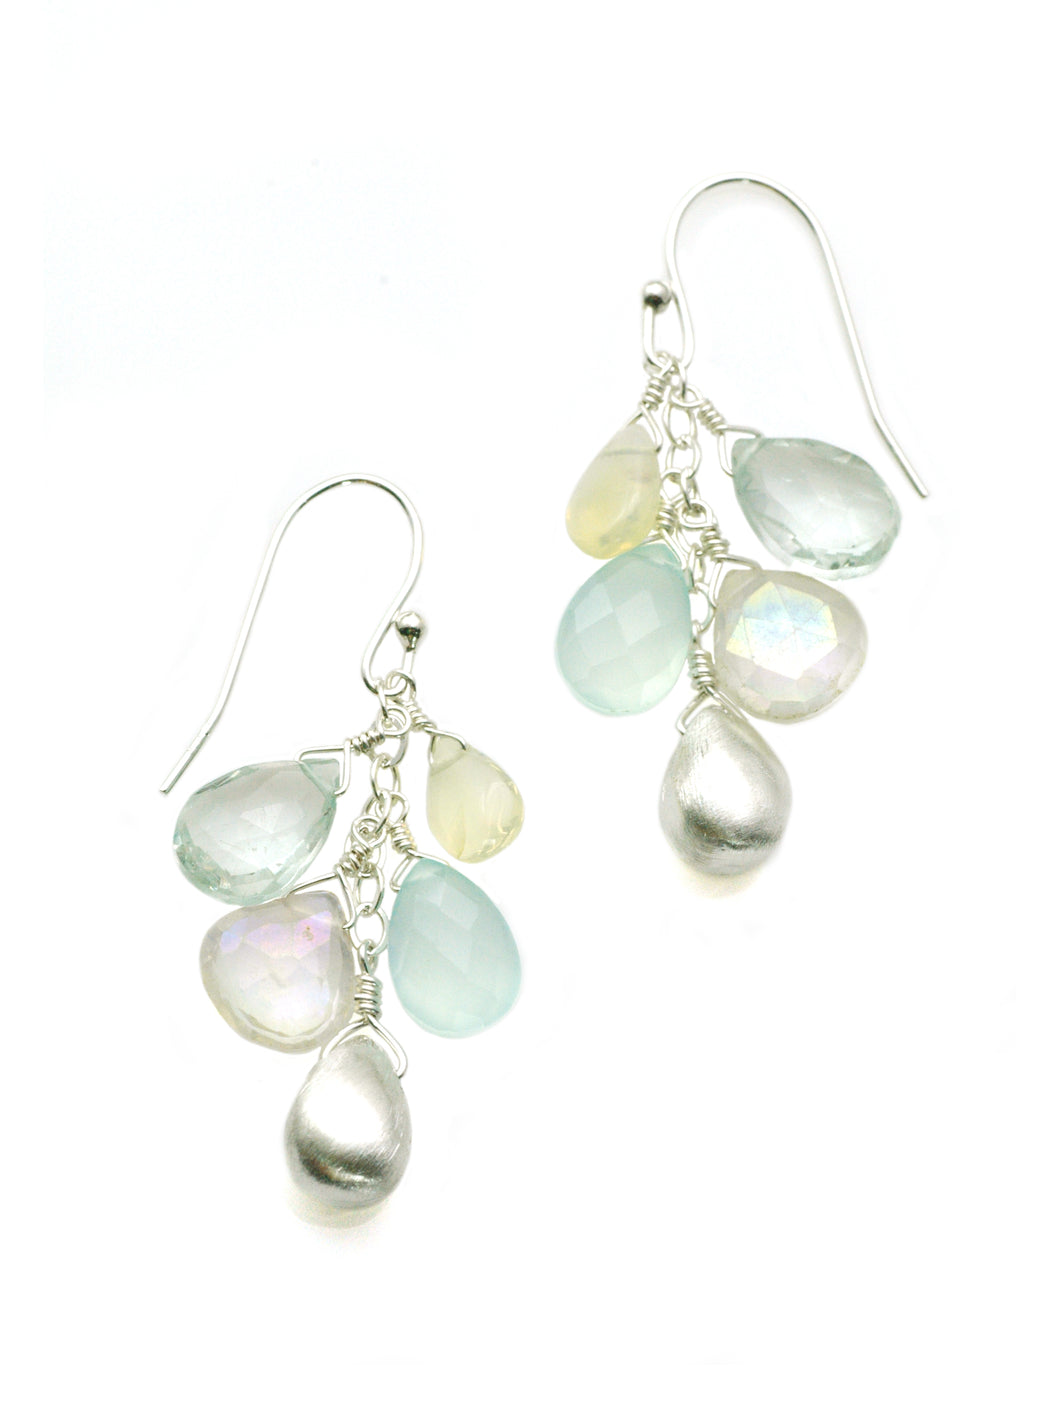 Philippa Roberts: Opal, zircon, amythest, chalcedony. cluster. silver earrings